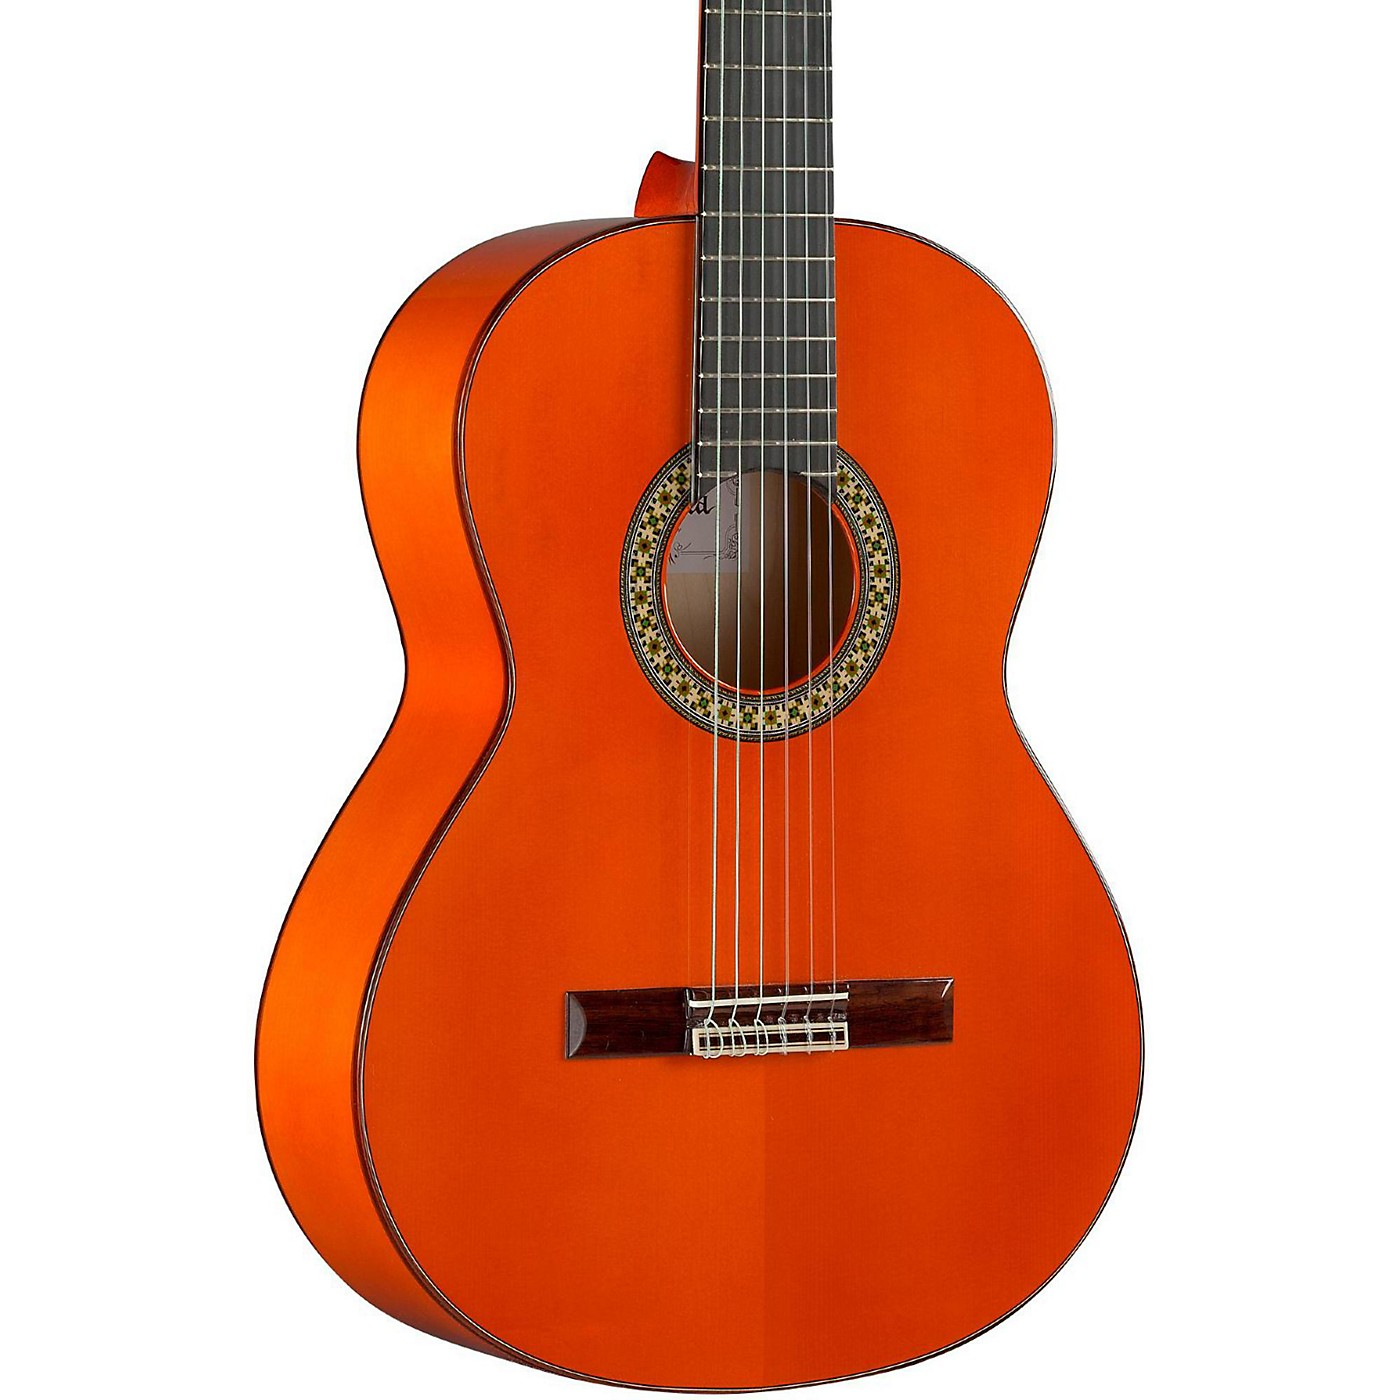 Alhambra 4 F Flamenco Acoustic Guitar thumbnail